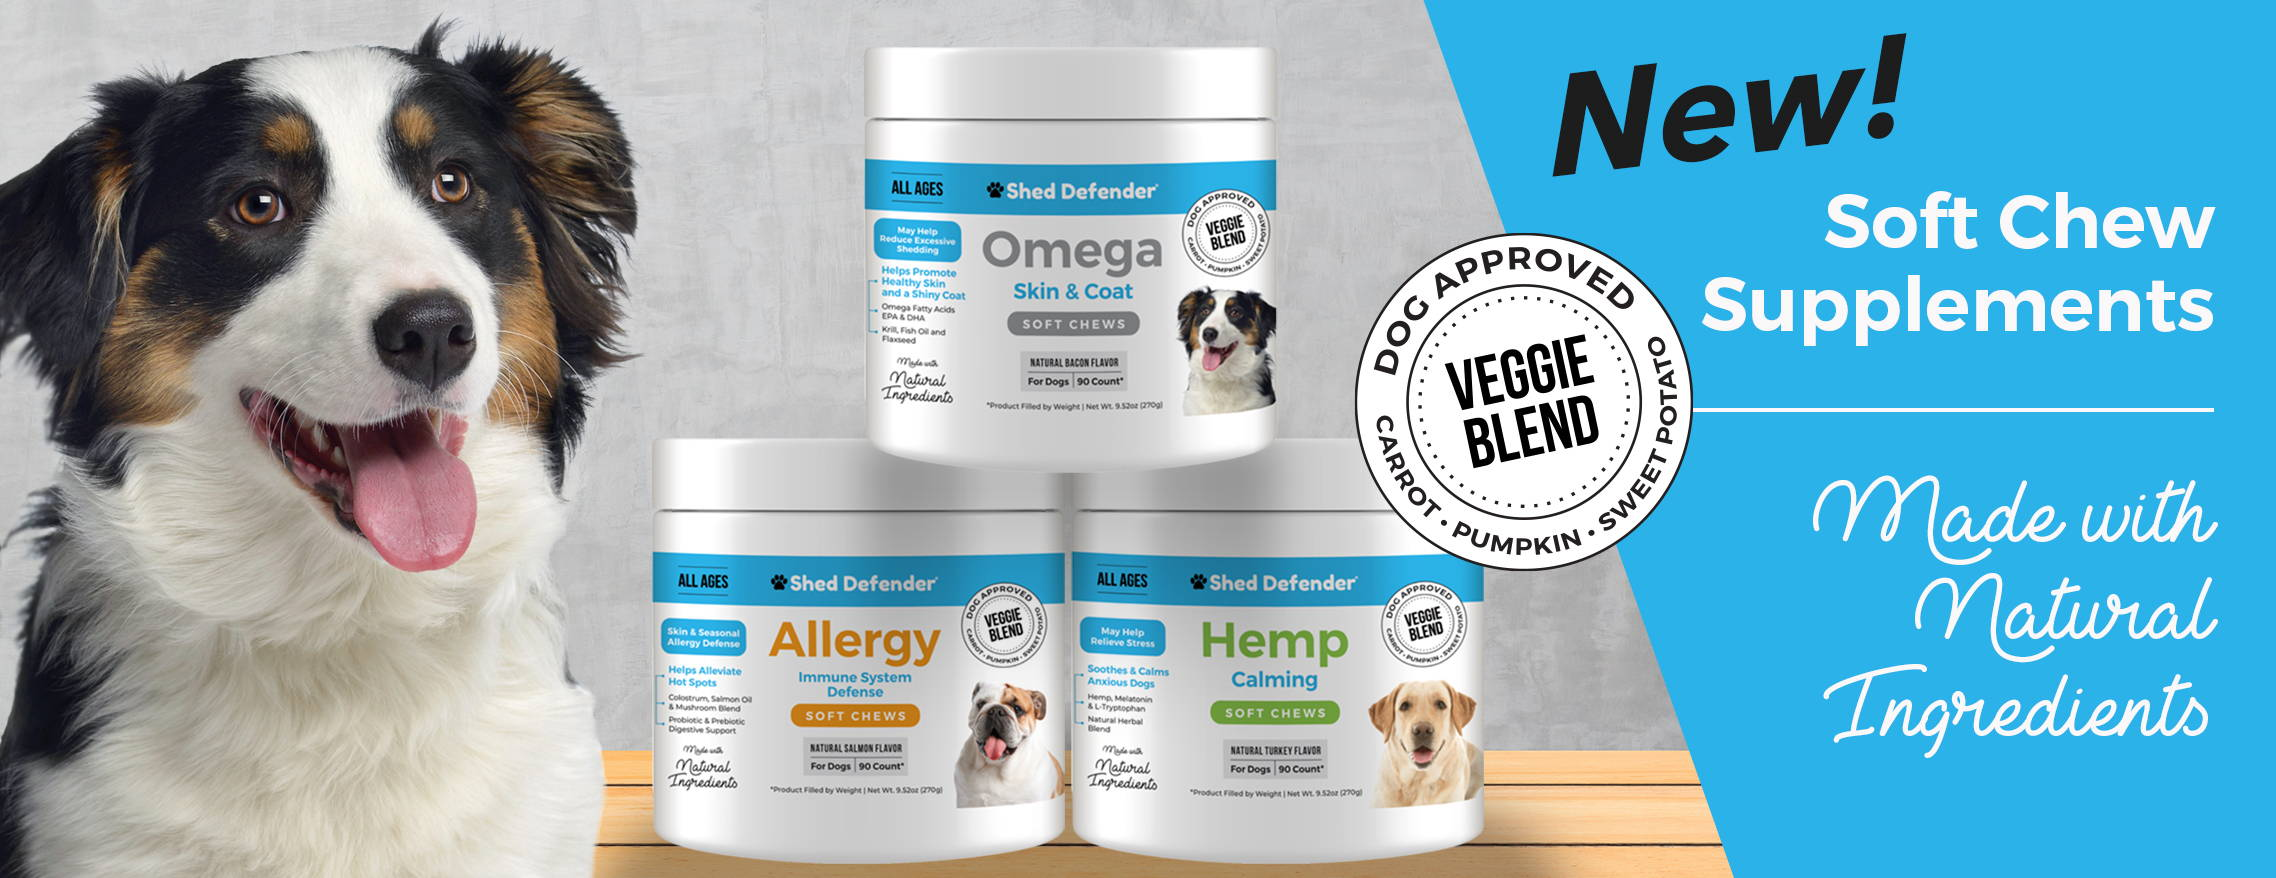 soft chew supplements for dogs